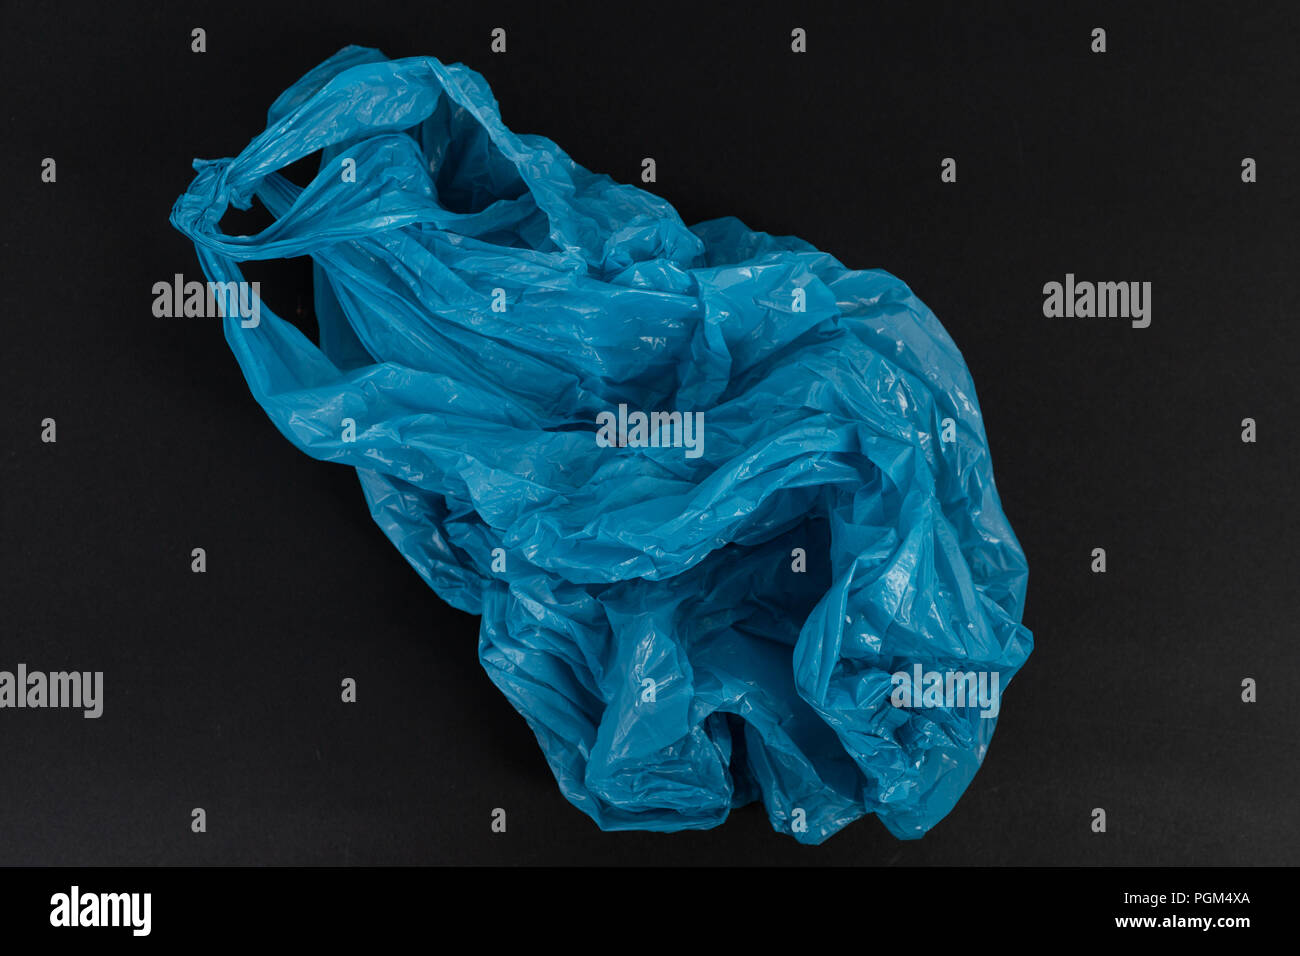 Old used crumpled blue shopping plastic or garbage bag as single use waste environment pollution concept isolated on black background - Stock Image